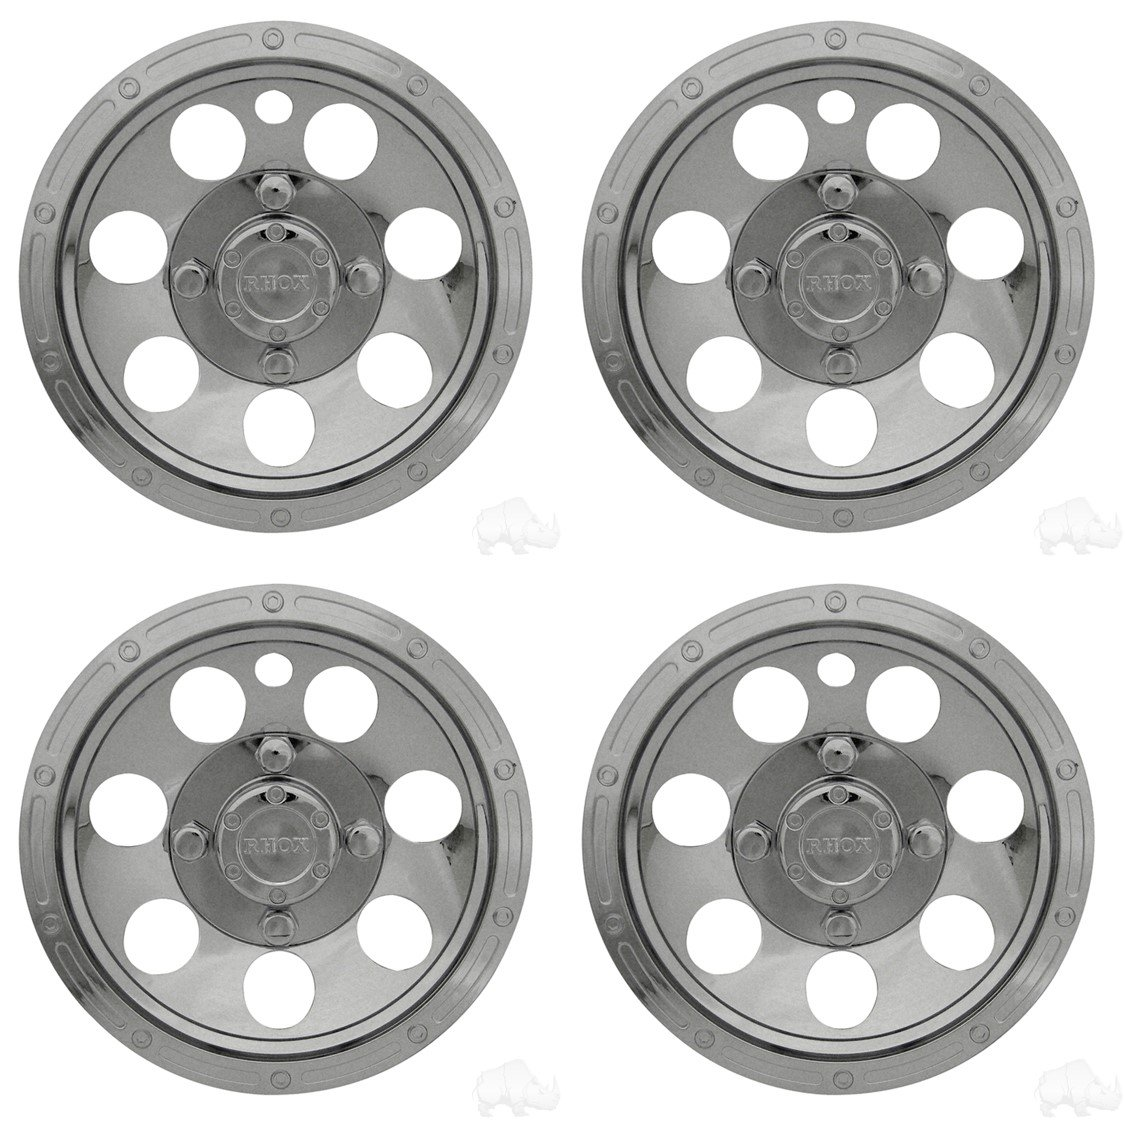 WHEEL COVER, 10'' RALLY CHROME by Best Turf WestNL